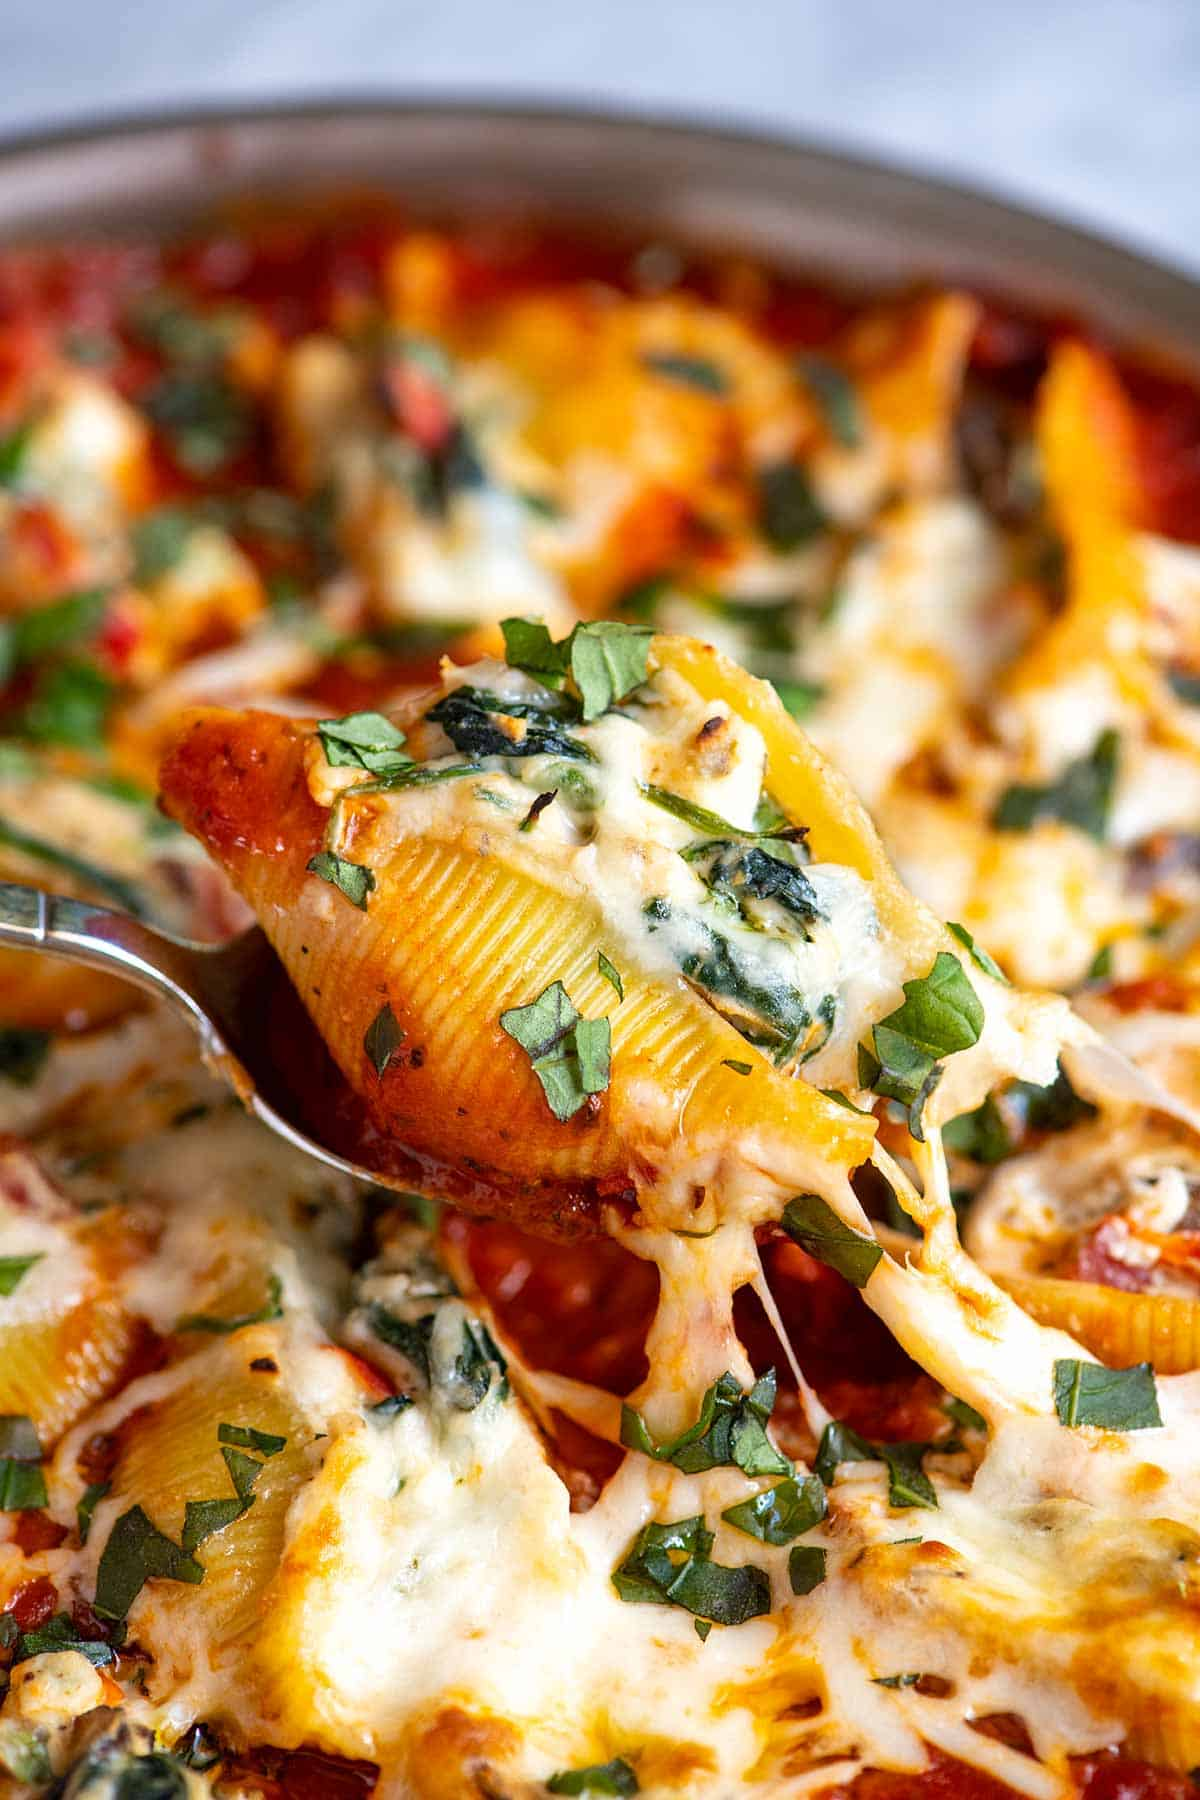 Pulling out one cheese and vegetable stuffed shell from the baking pan